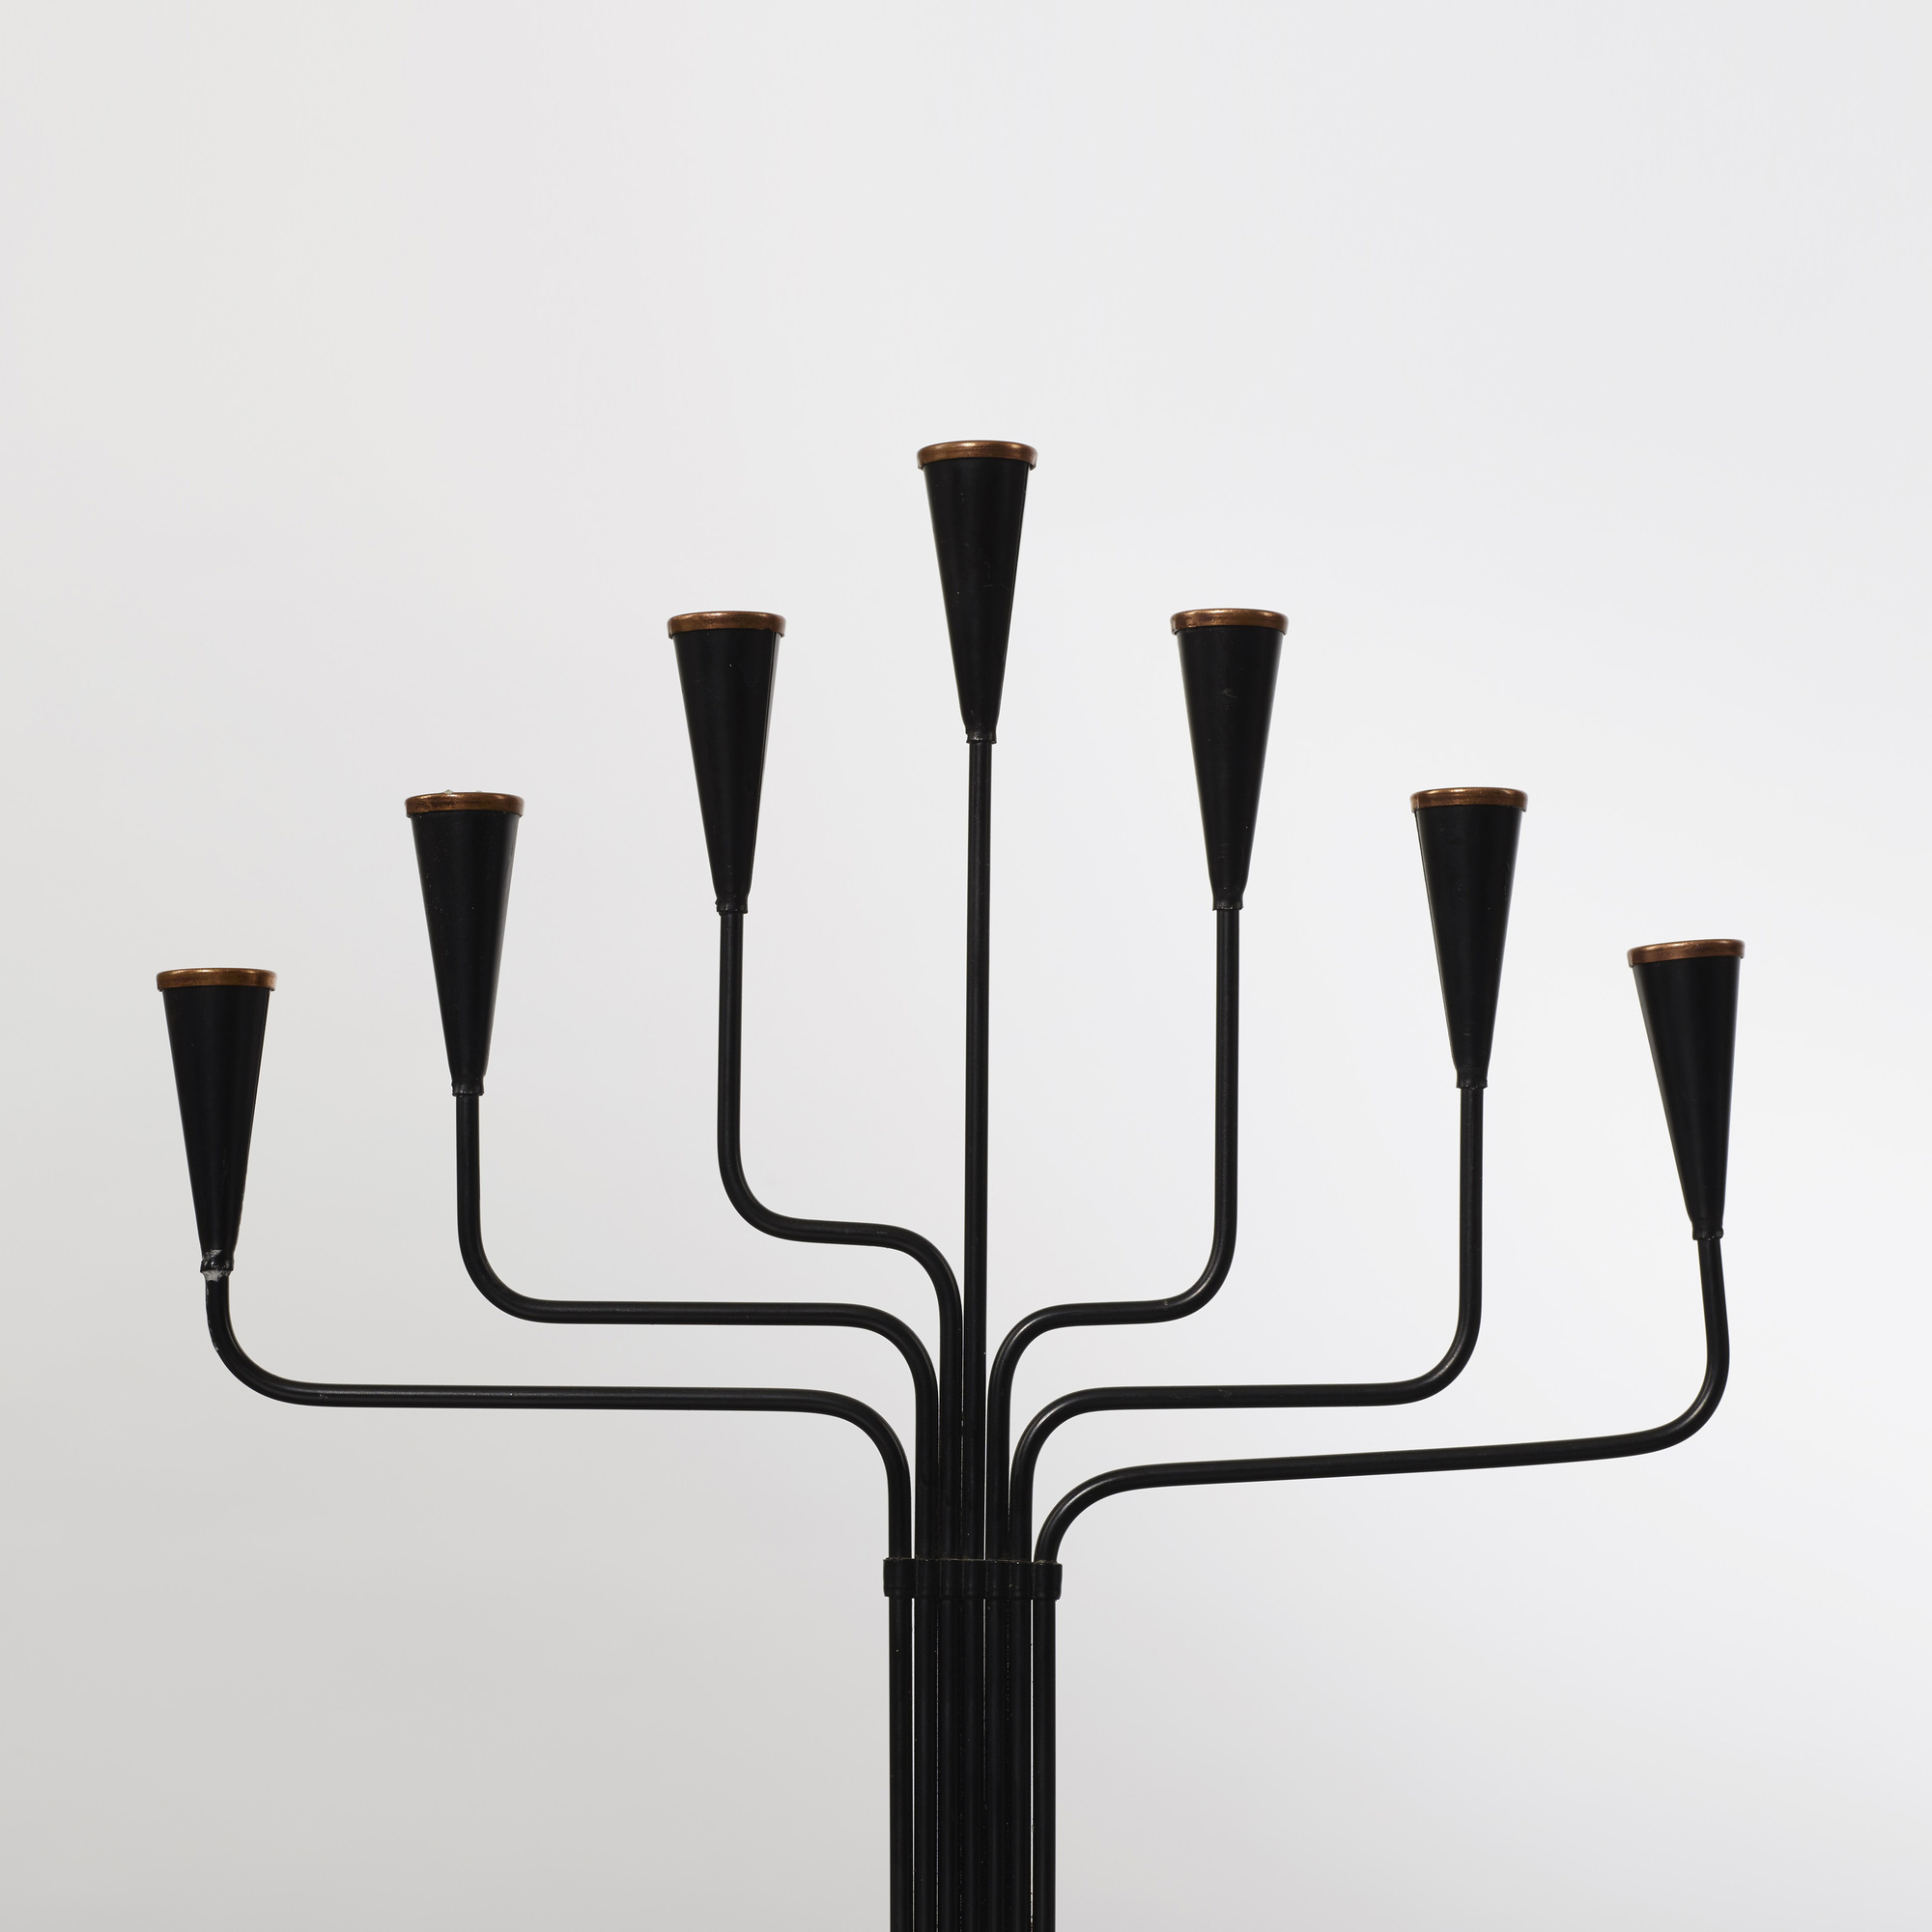 132: Gunnar Ander / candelabra, set of three (2 of 2)